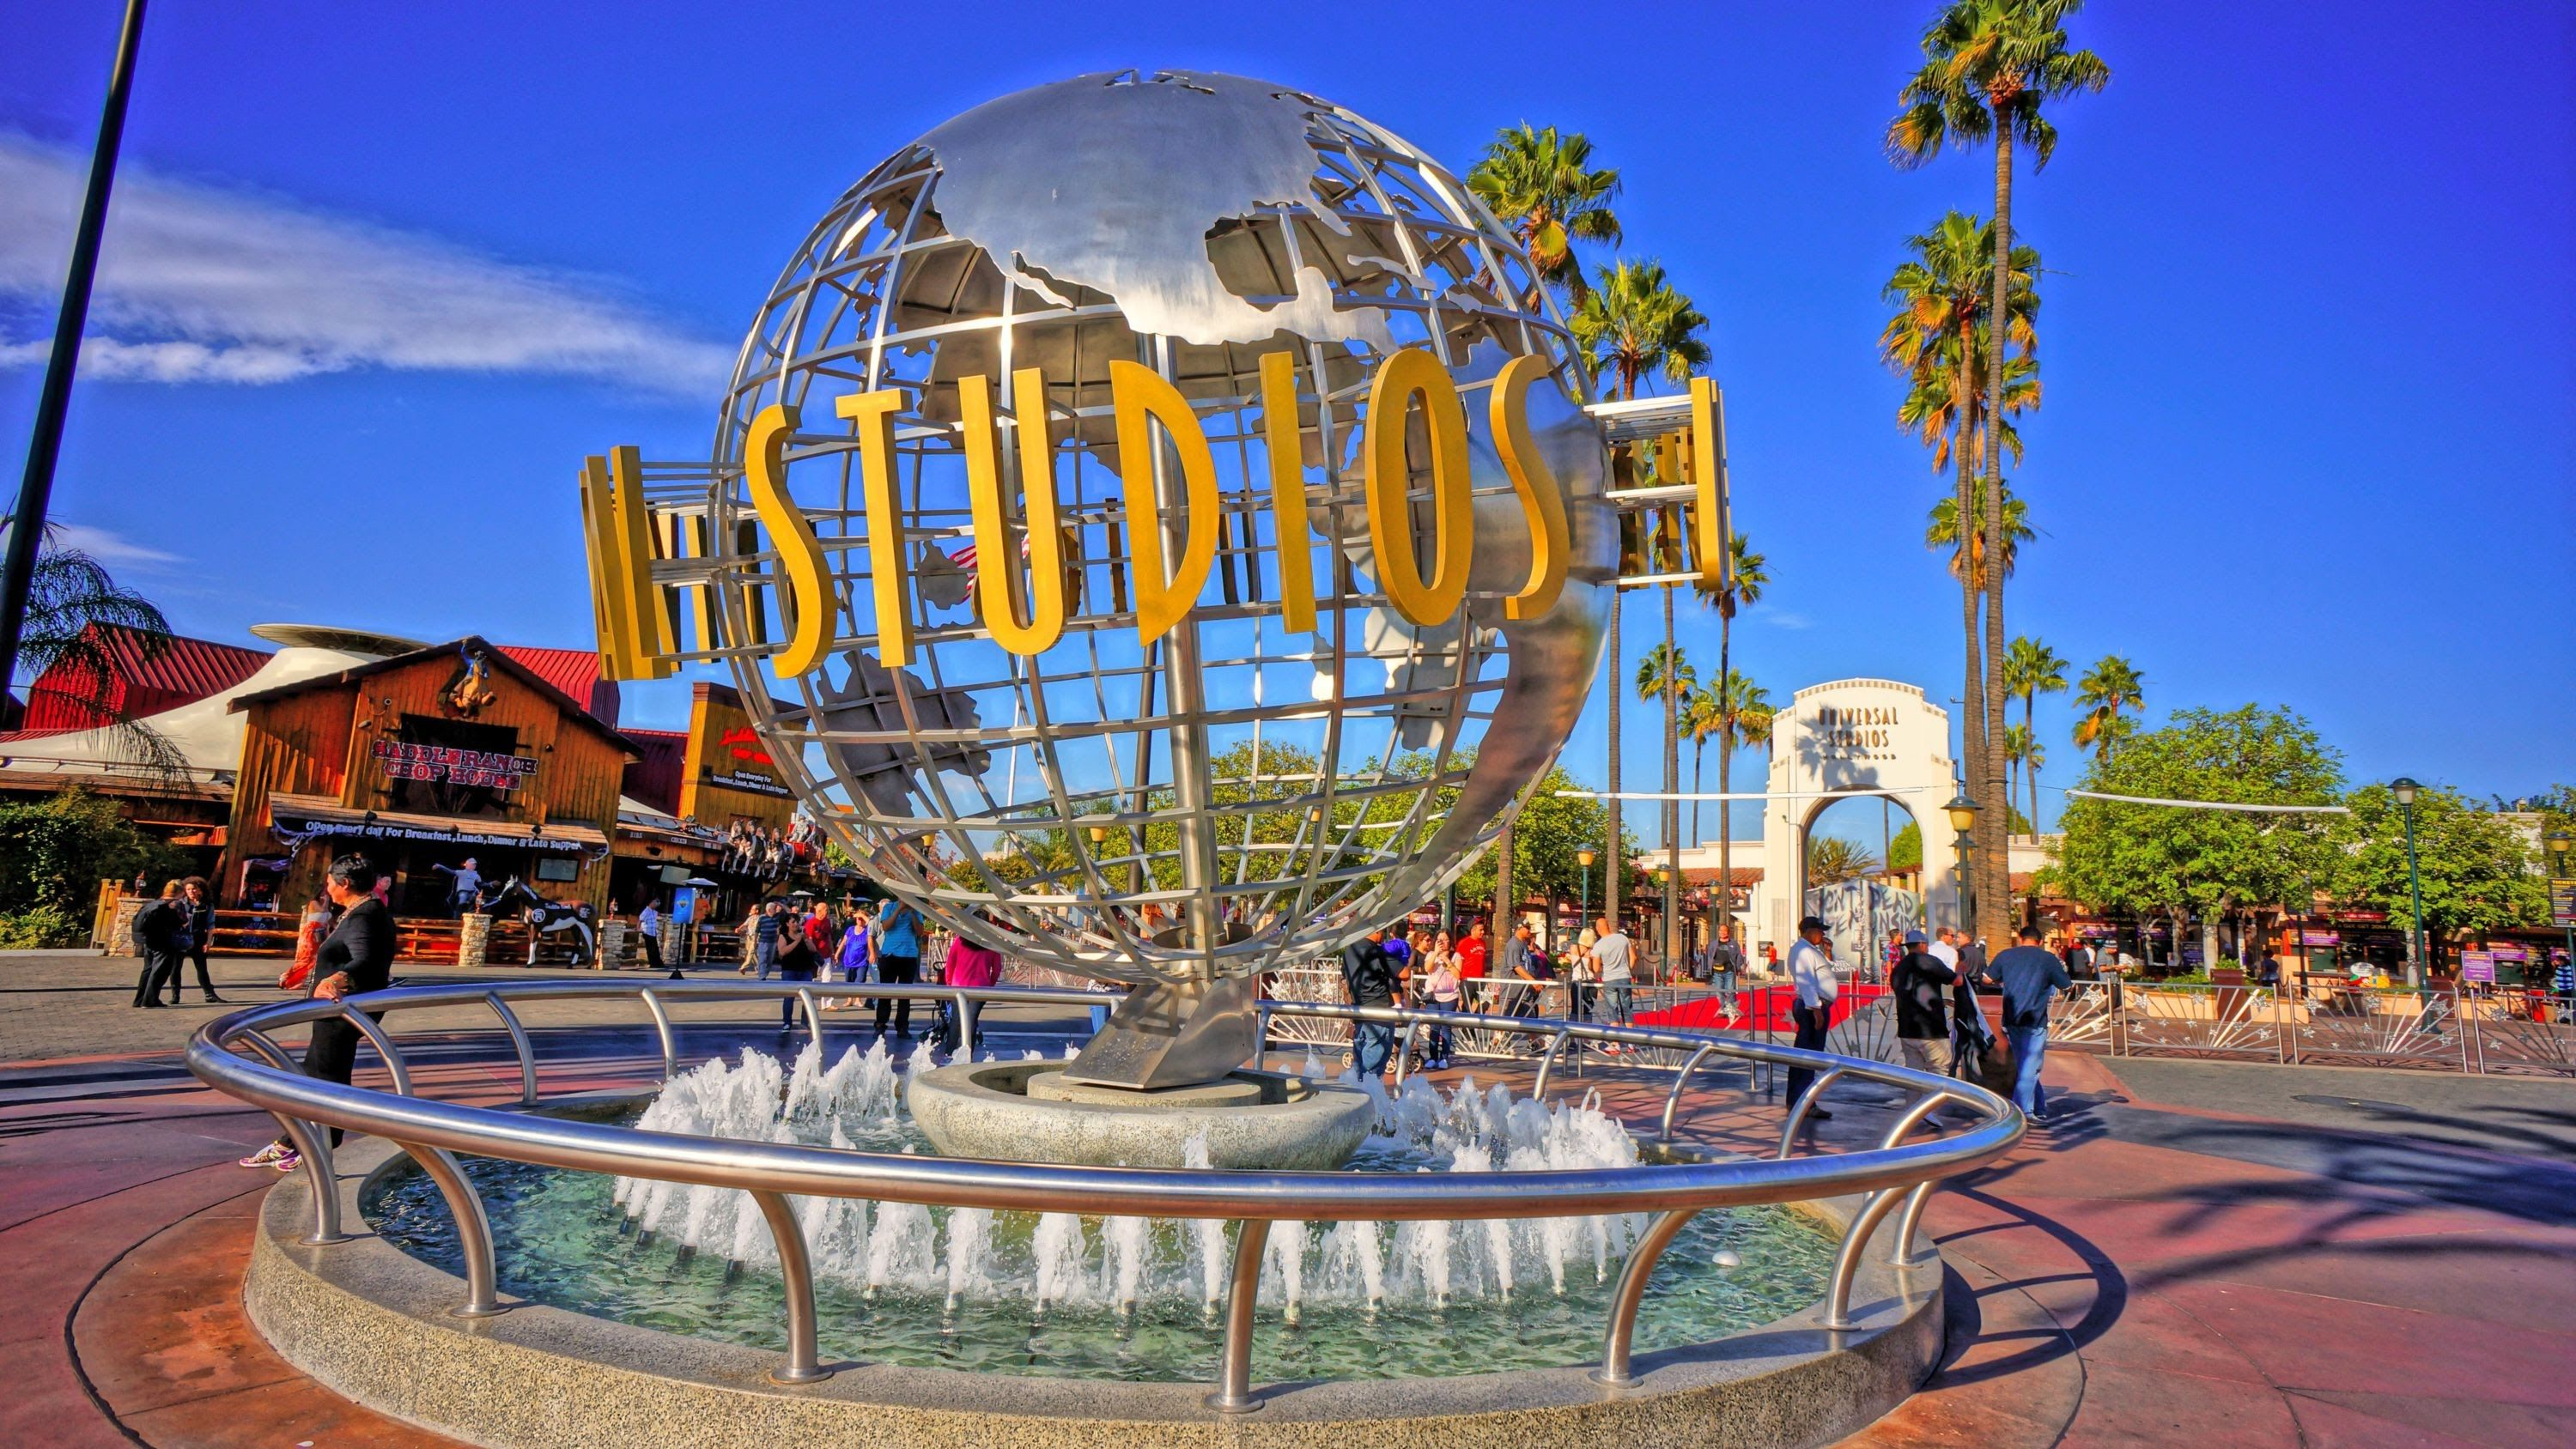 For Both Detours Teams Must Make Their Way To Universal Studios Description Fro Universal Studios Theme Park Los Angeles Parks Universal Studio Los Angeles